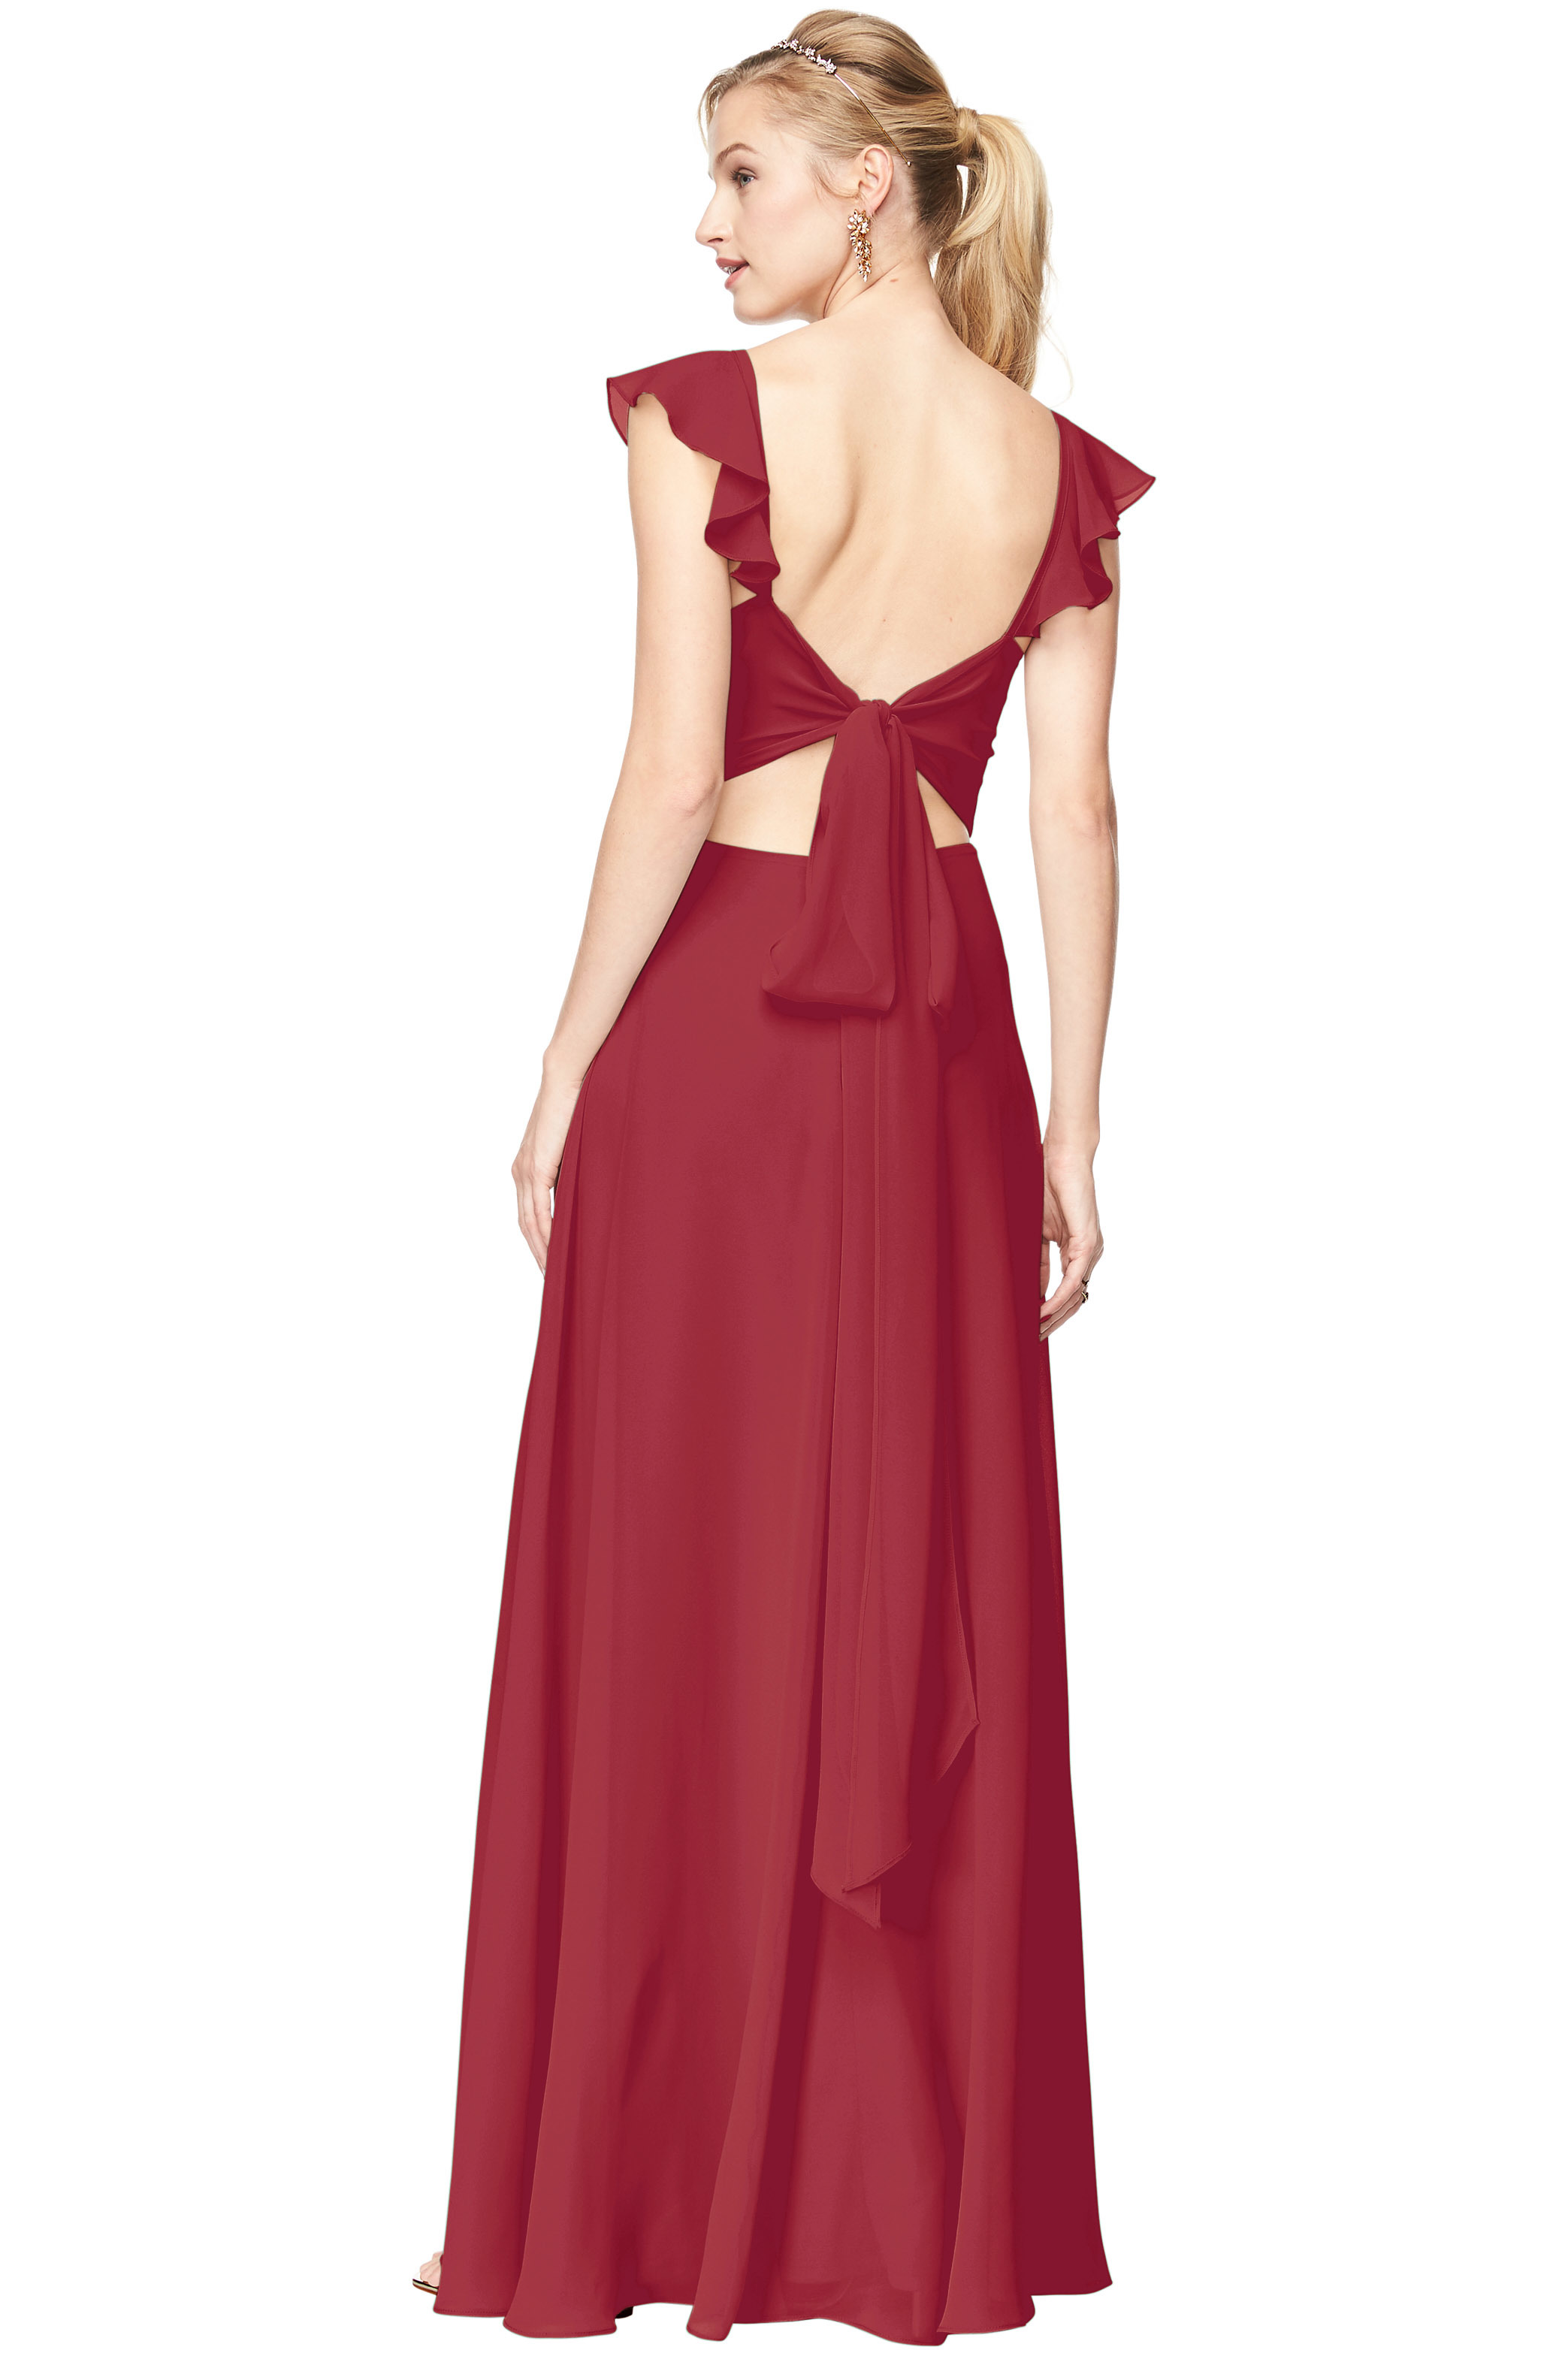 Bill Levkoff CHERRY Chiffon V-Neck, Cap Sleeve A-line gown, $198.00 Back